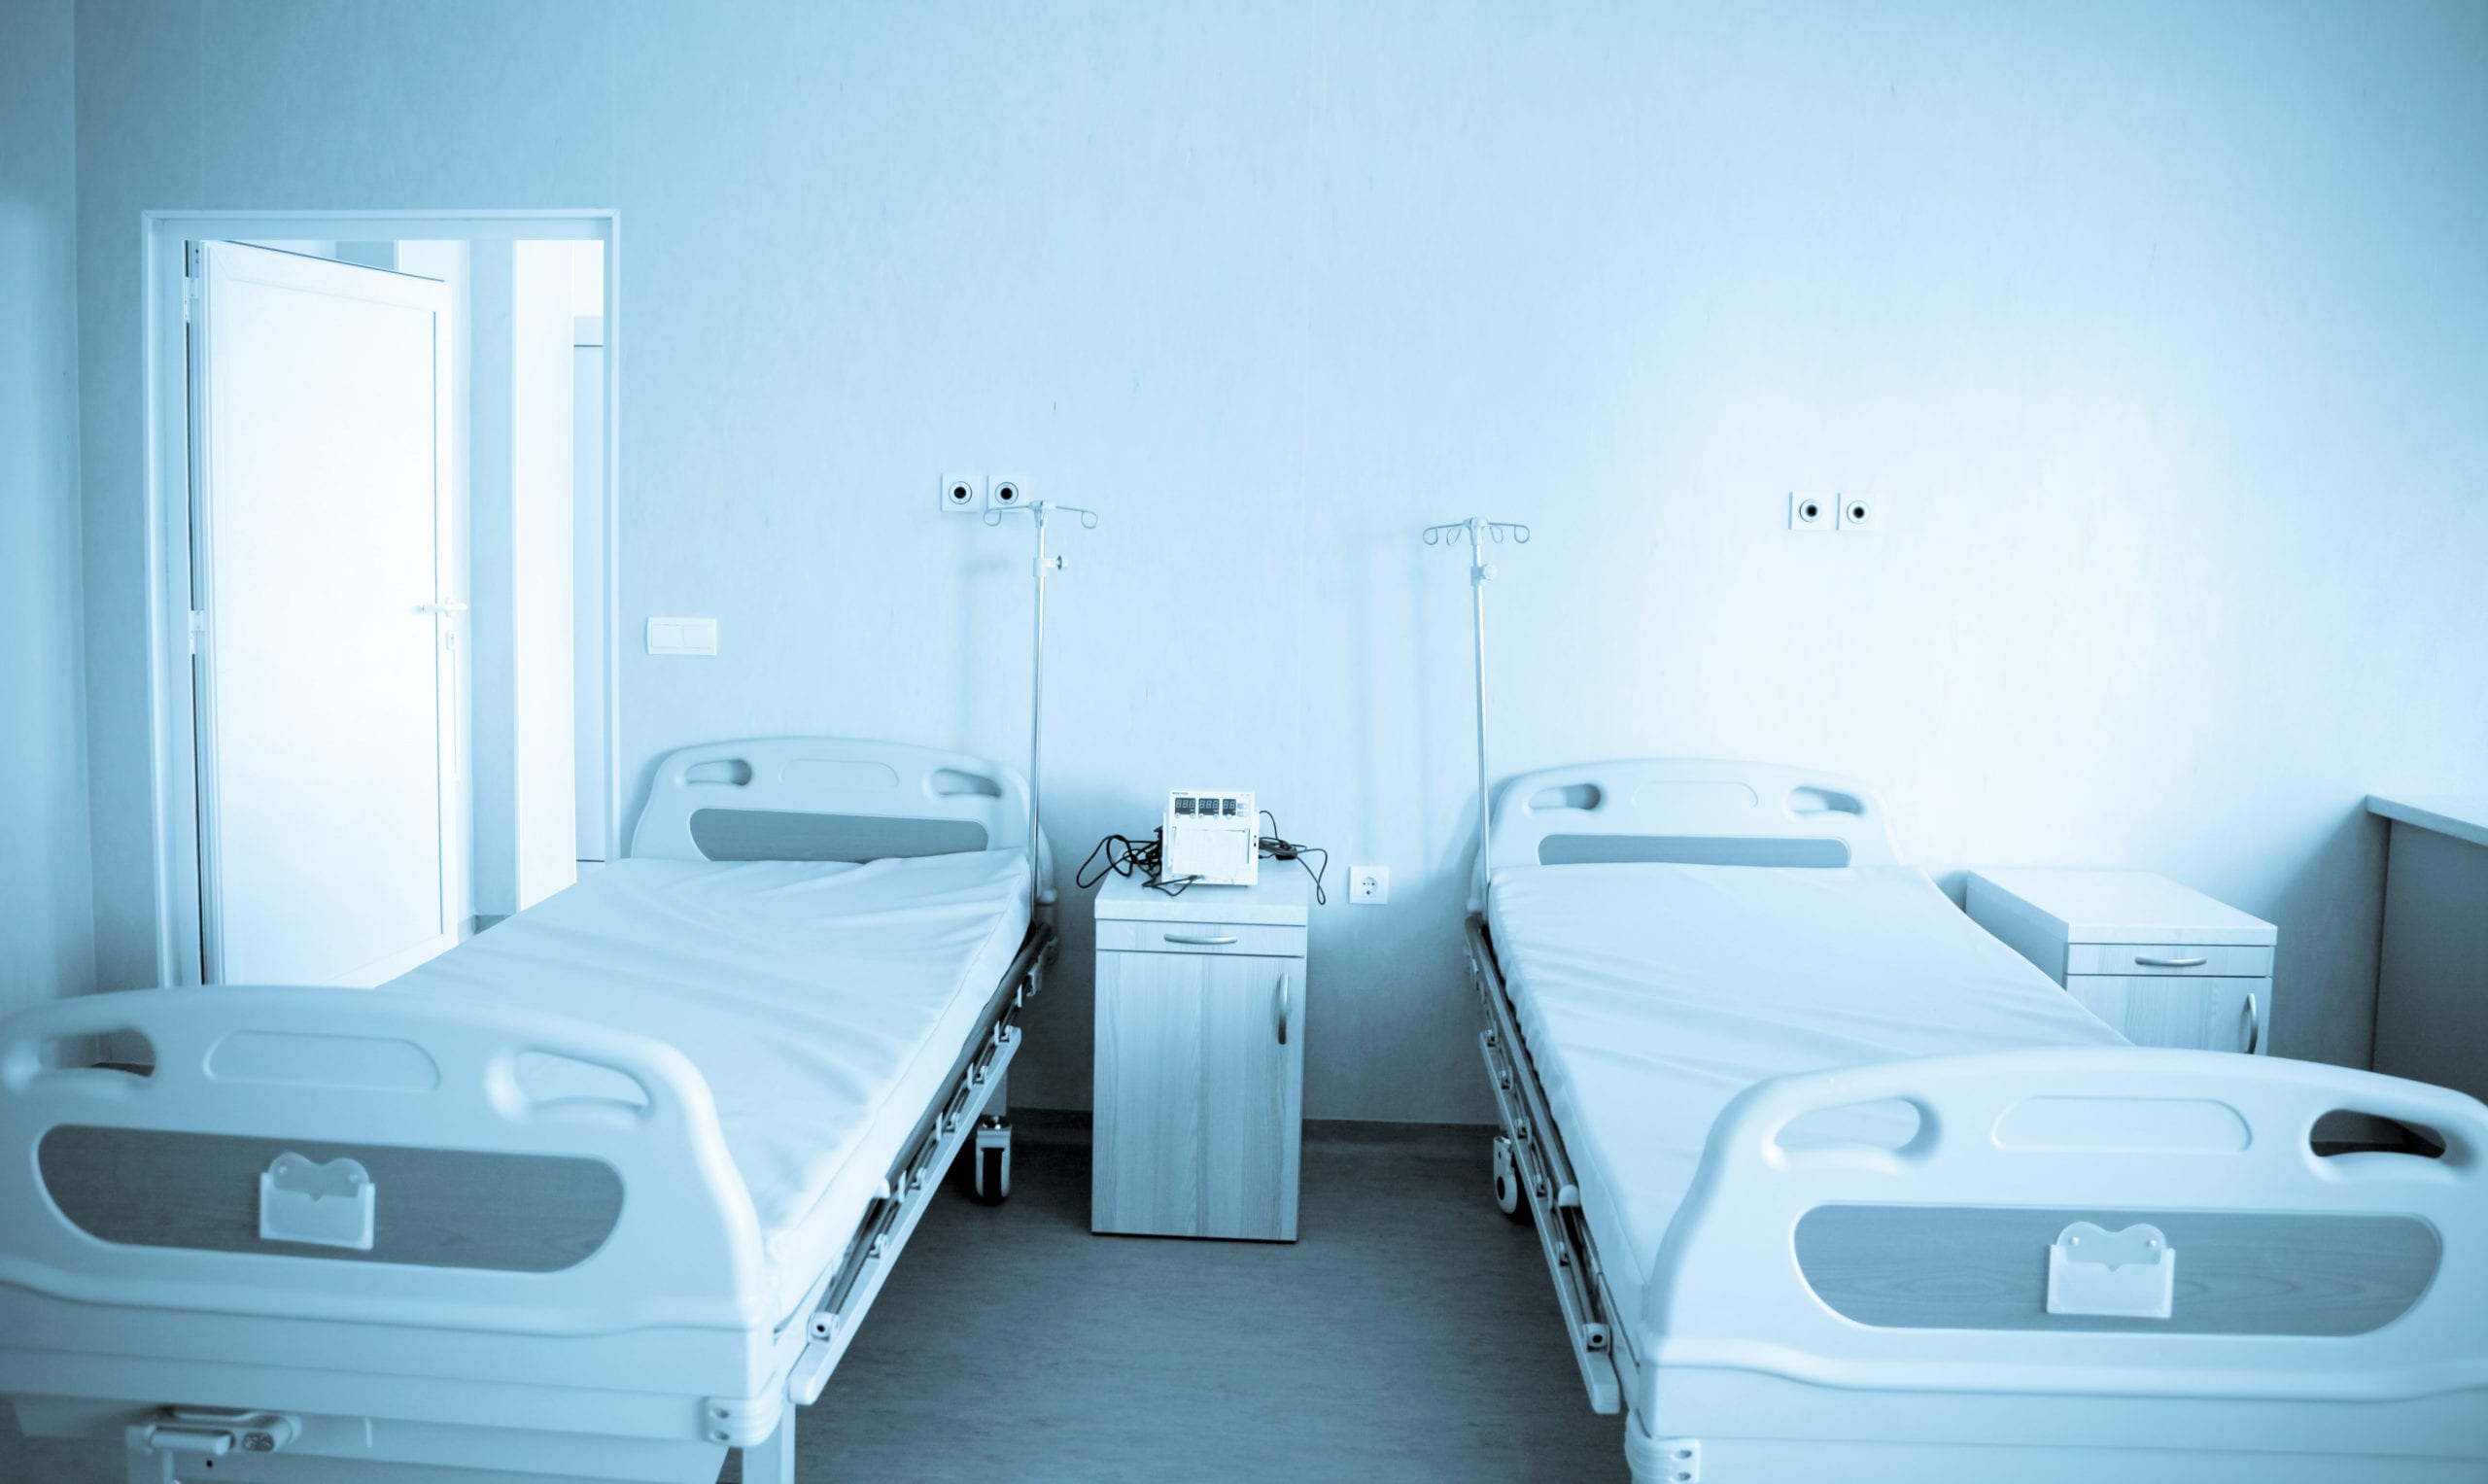 Controlling Waterborne Pathogens in Hospitals